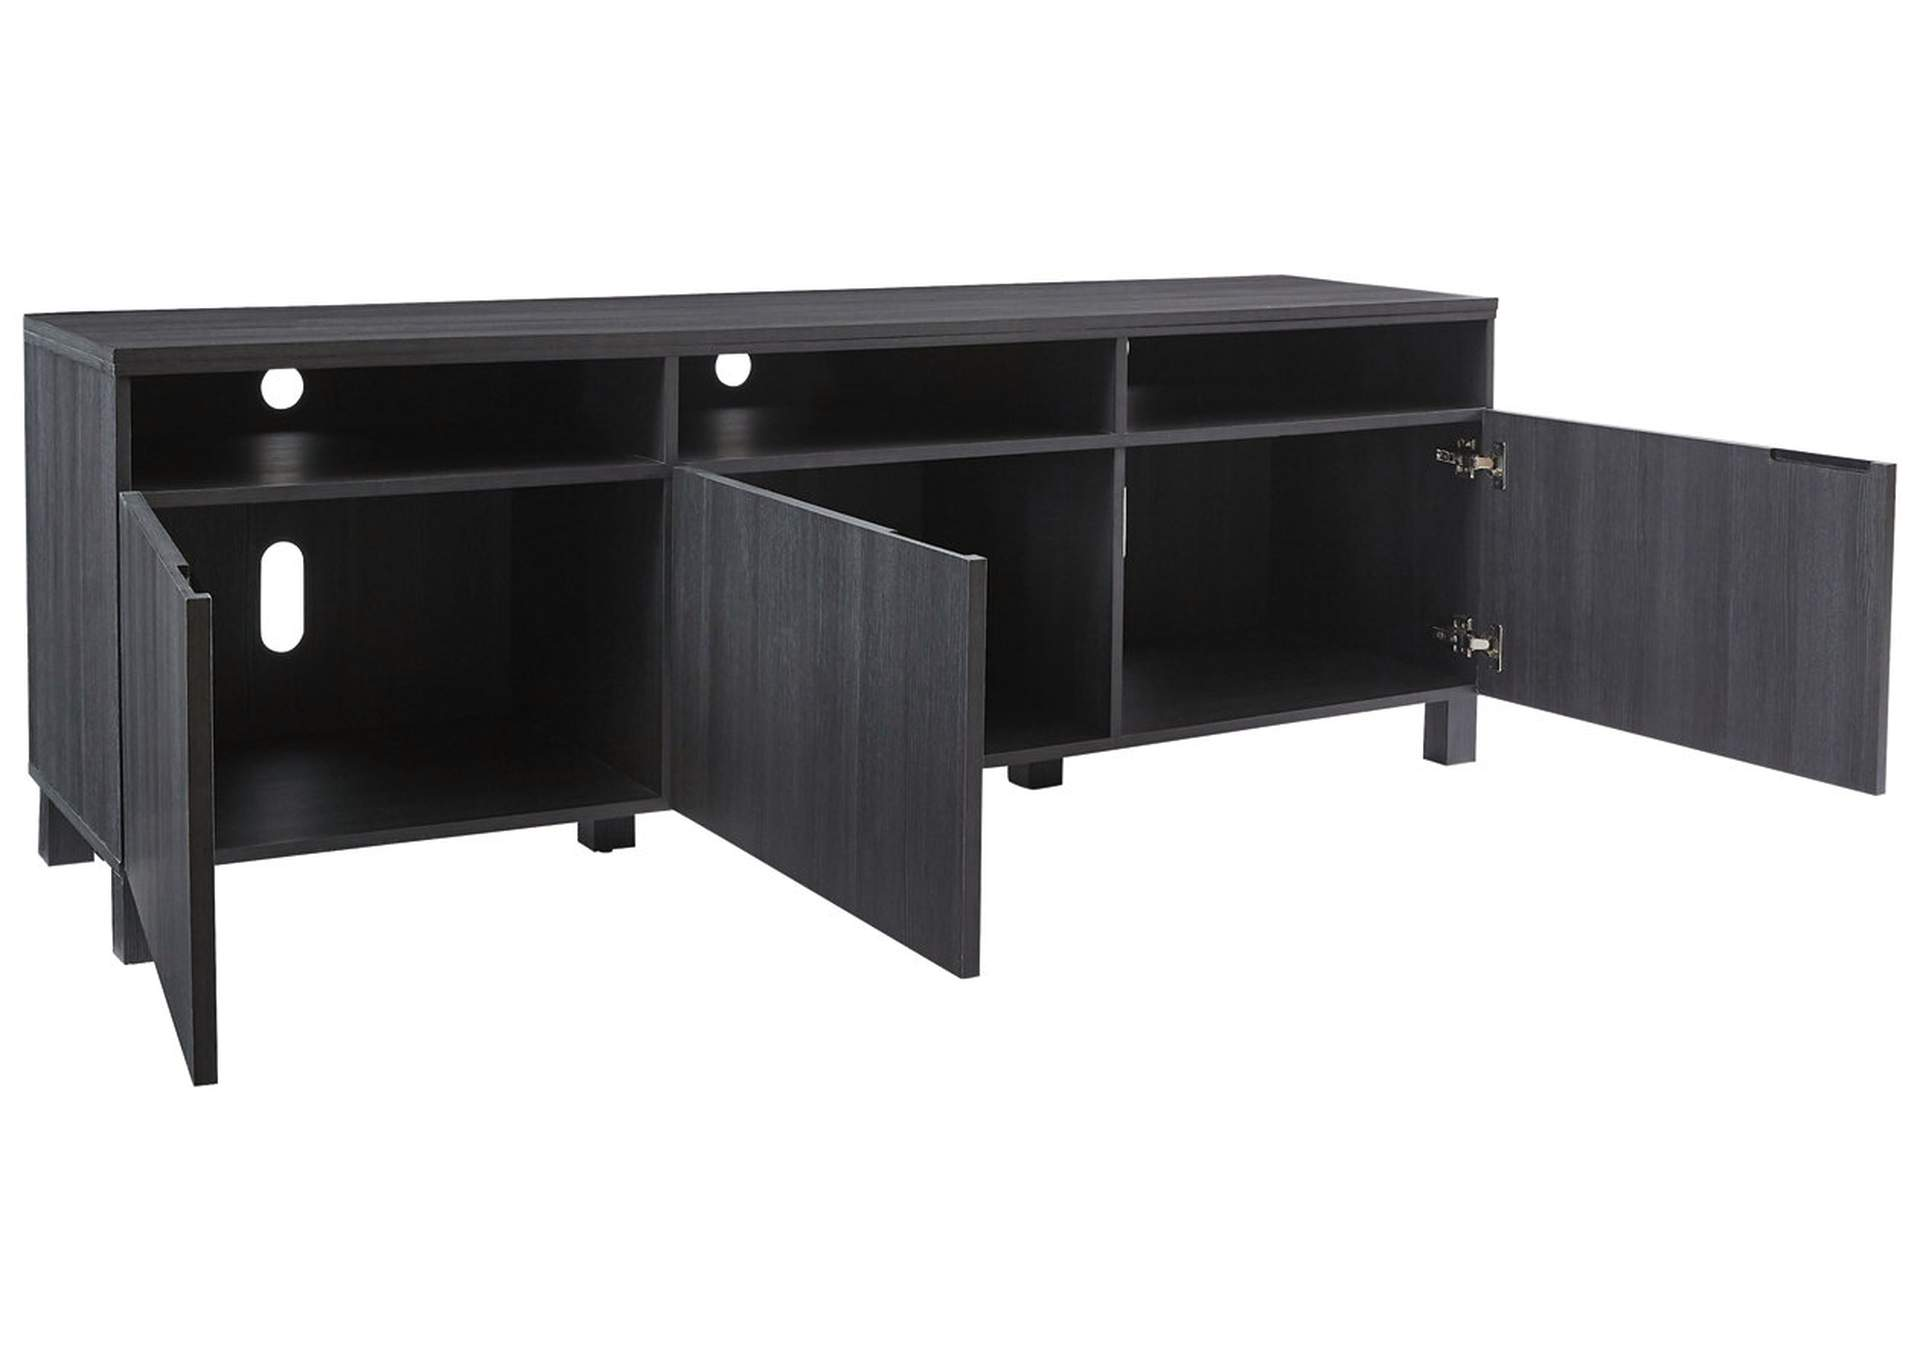 "Yarlow 70"" TV Stand,Signature Design By Ashley"